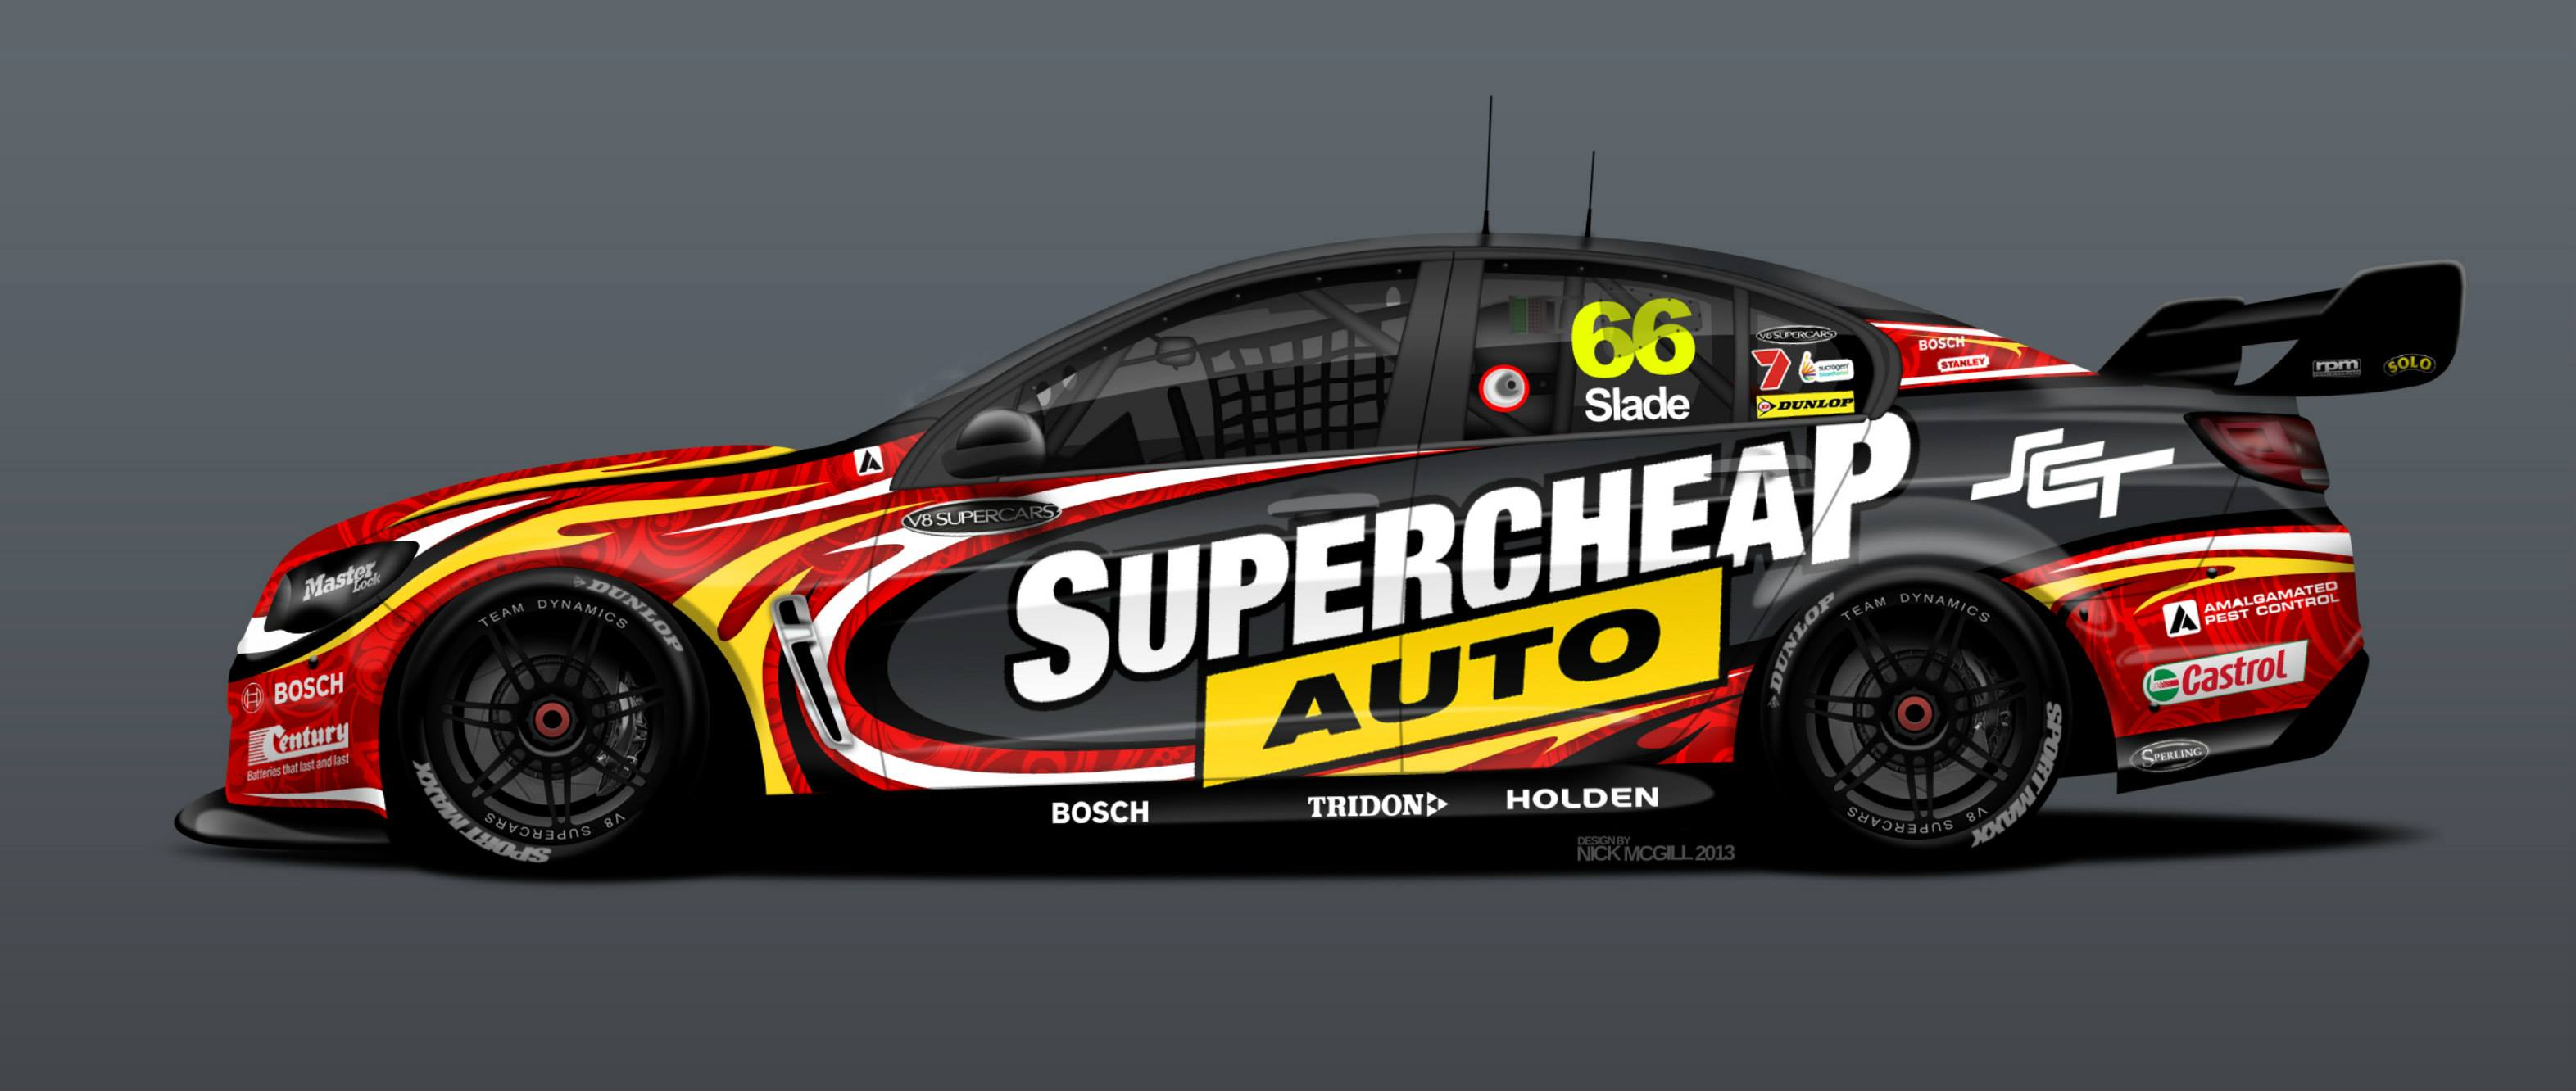 V8 Supercars Wallpapers HD Download 3144x1332